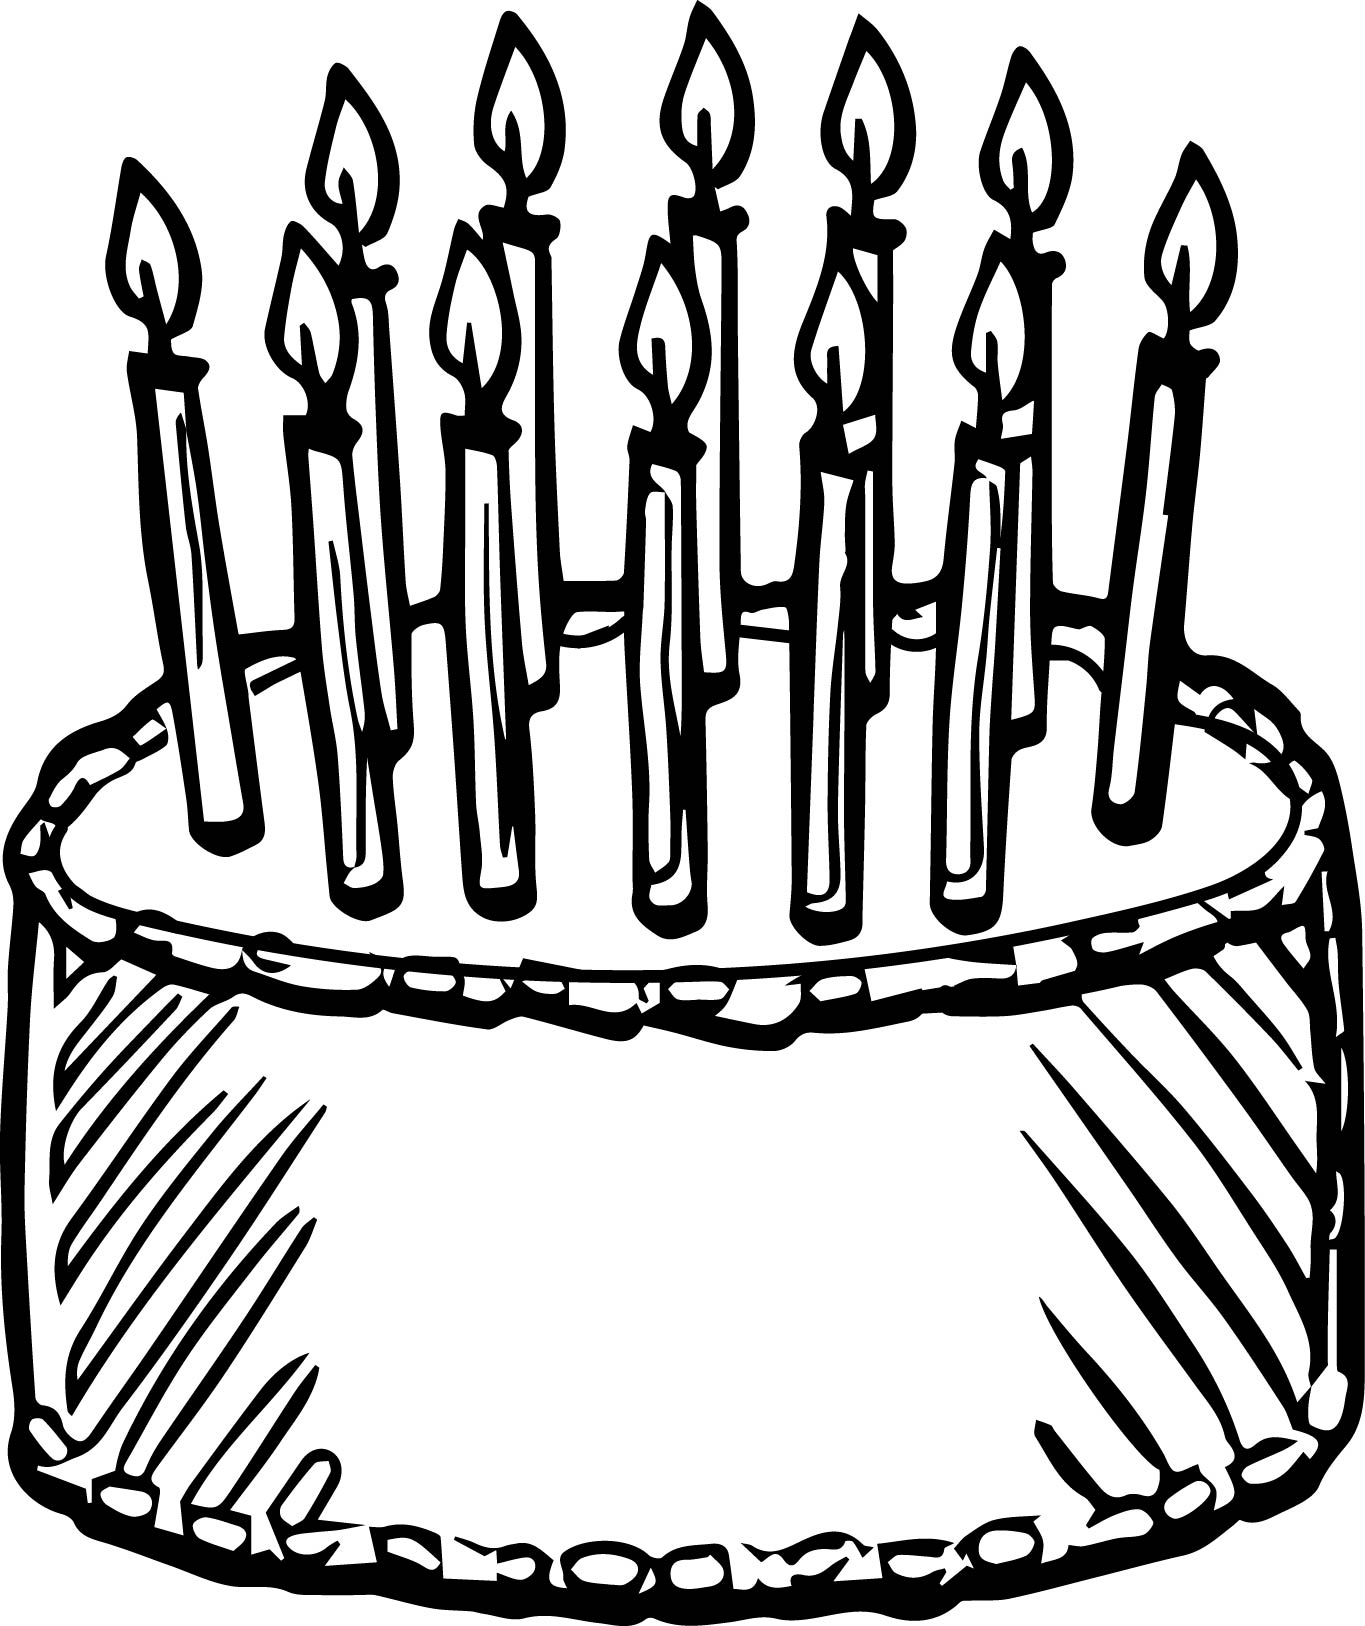 1365x1626 Birthday Cake Draw Coloring Page Wecoloringpage